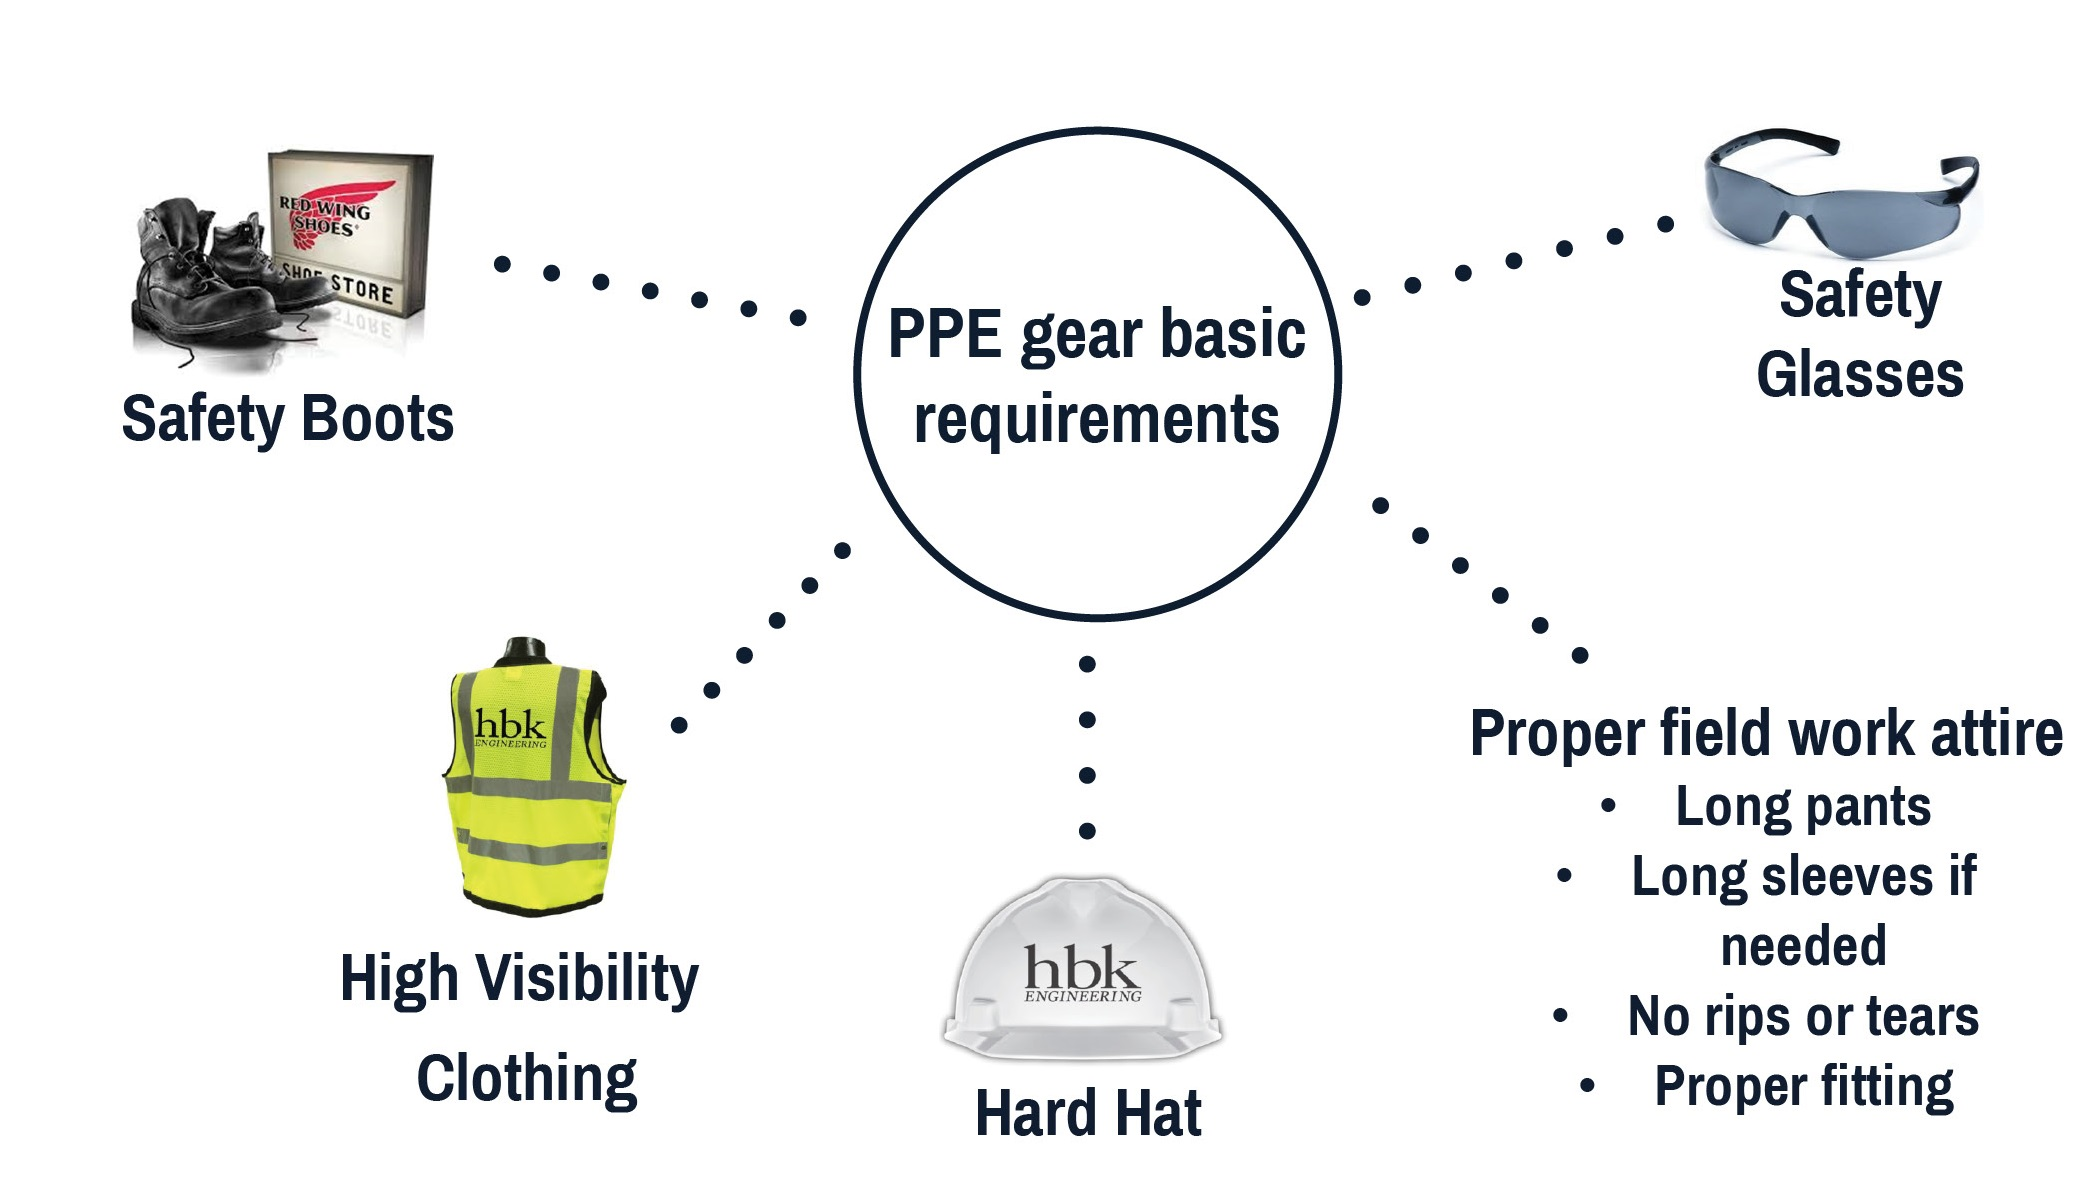 Web-Safety PPE